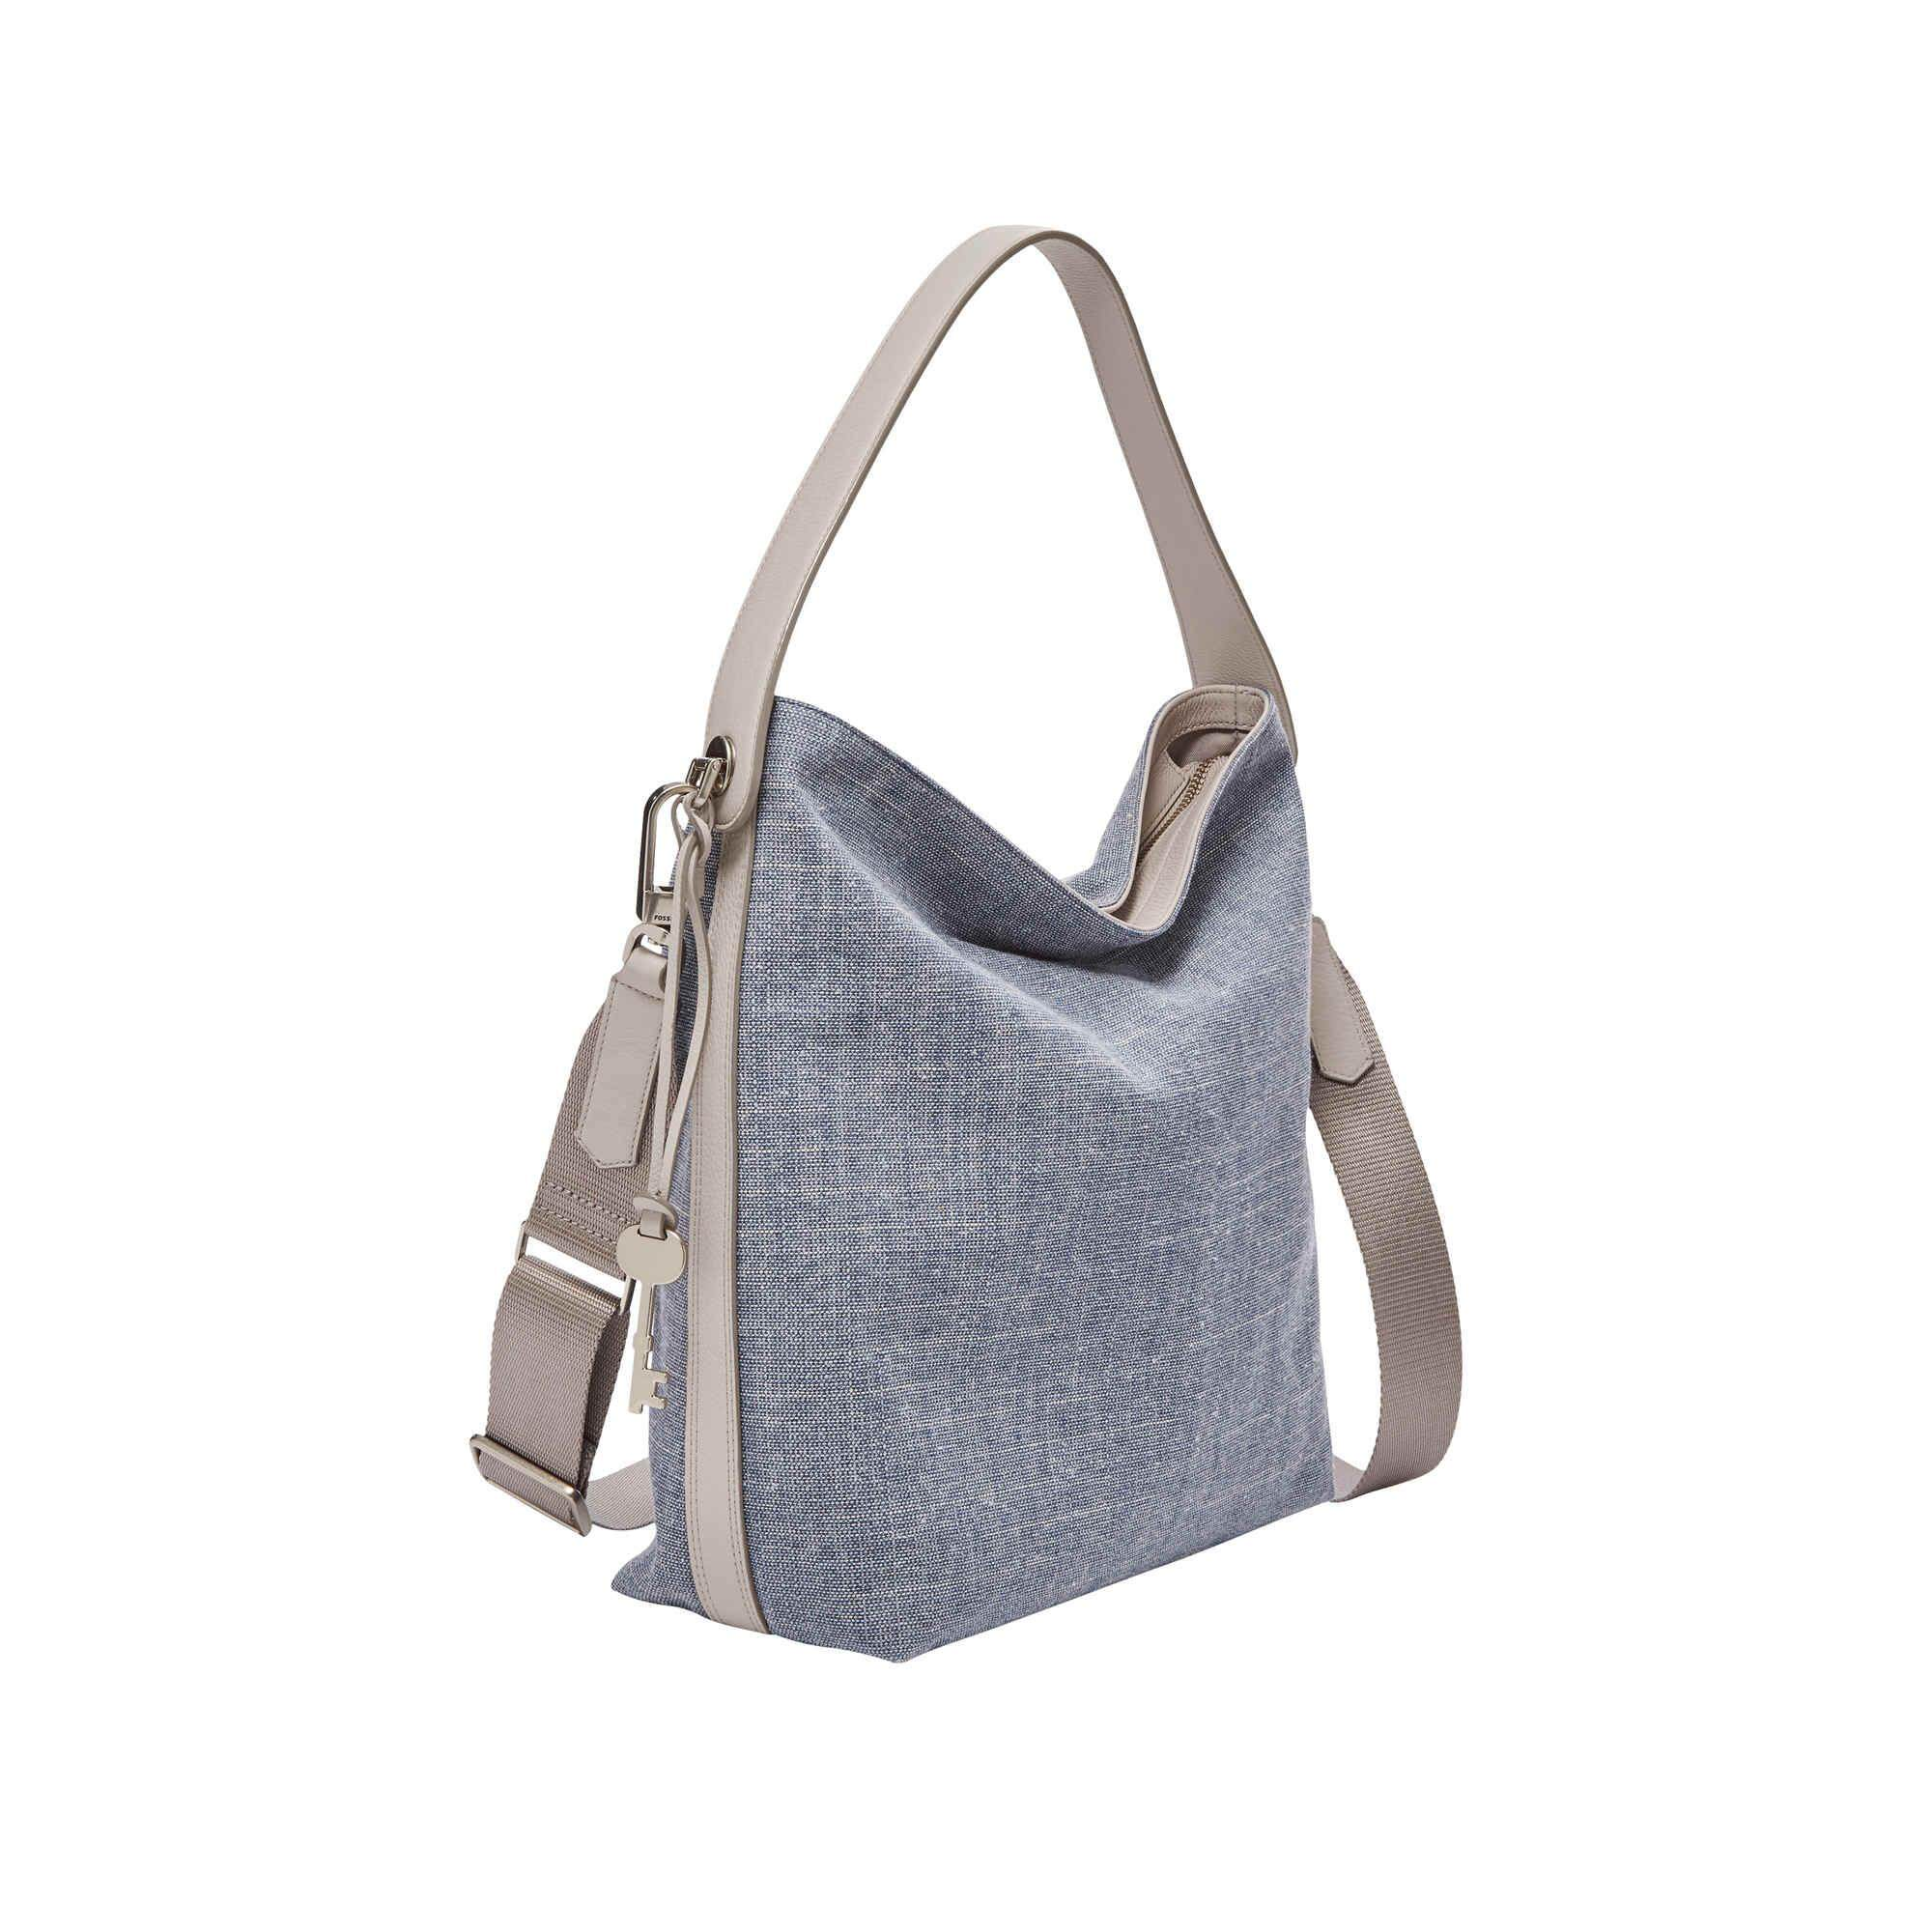 Fossil Women Bags Price In Malaysia Best Lazada Emma Tote Blue Print Maya Shoulder Bag Zb7465197